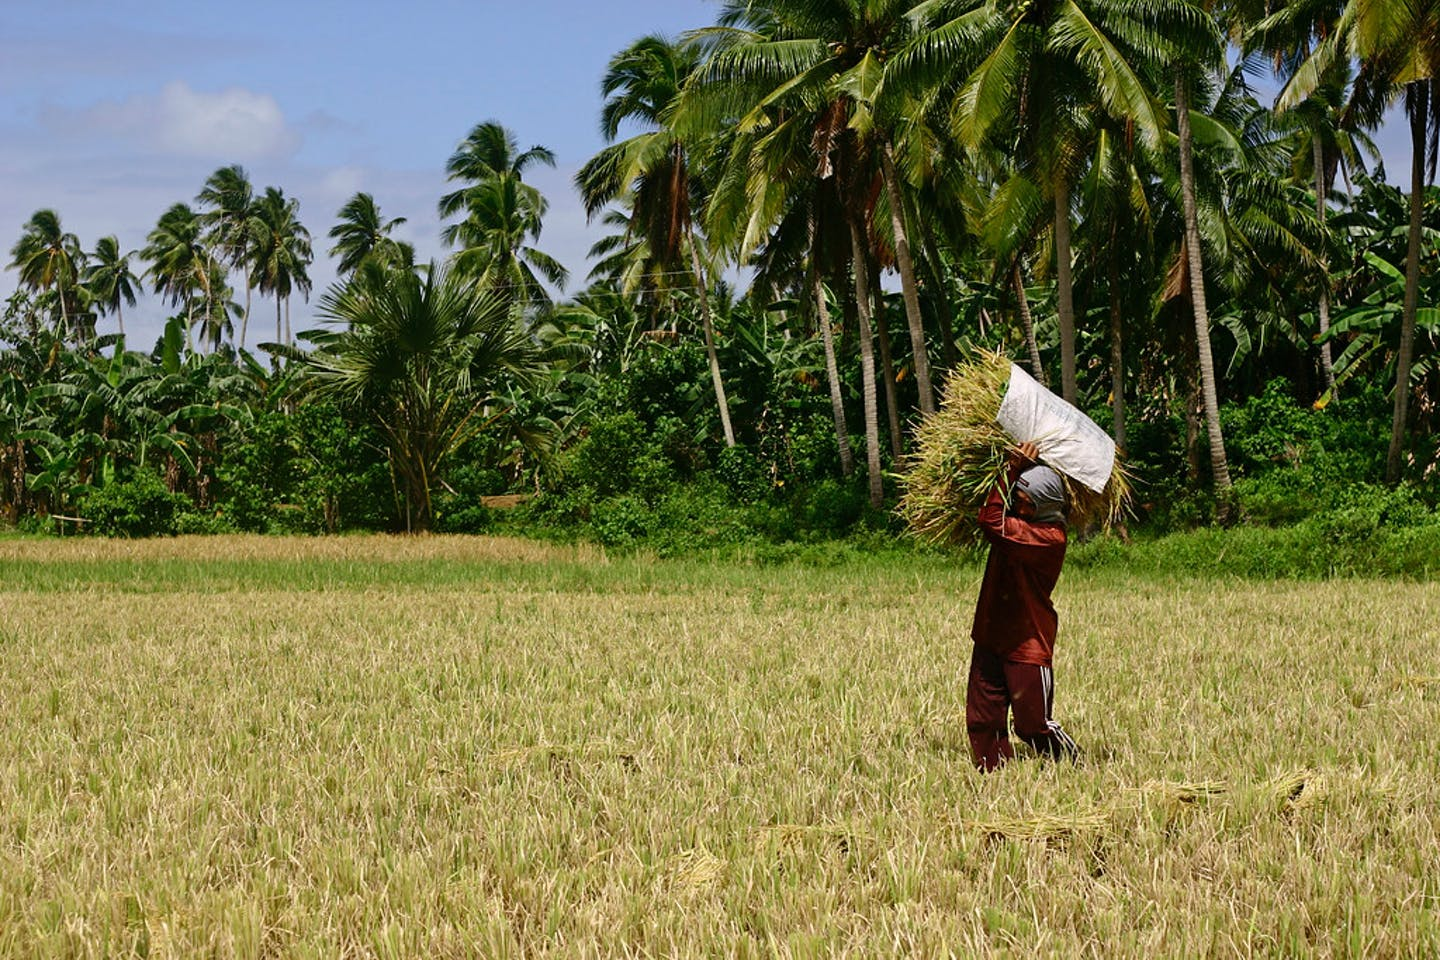 Man carrying bundle of rice in Quezon, Philippines